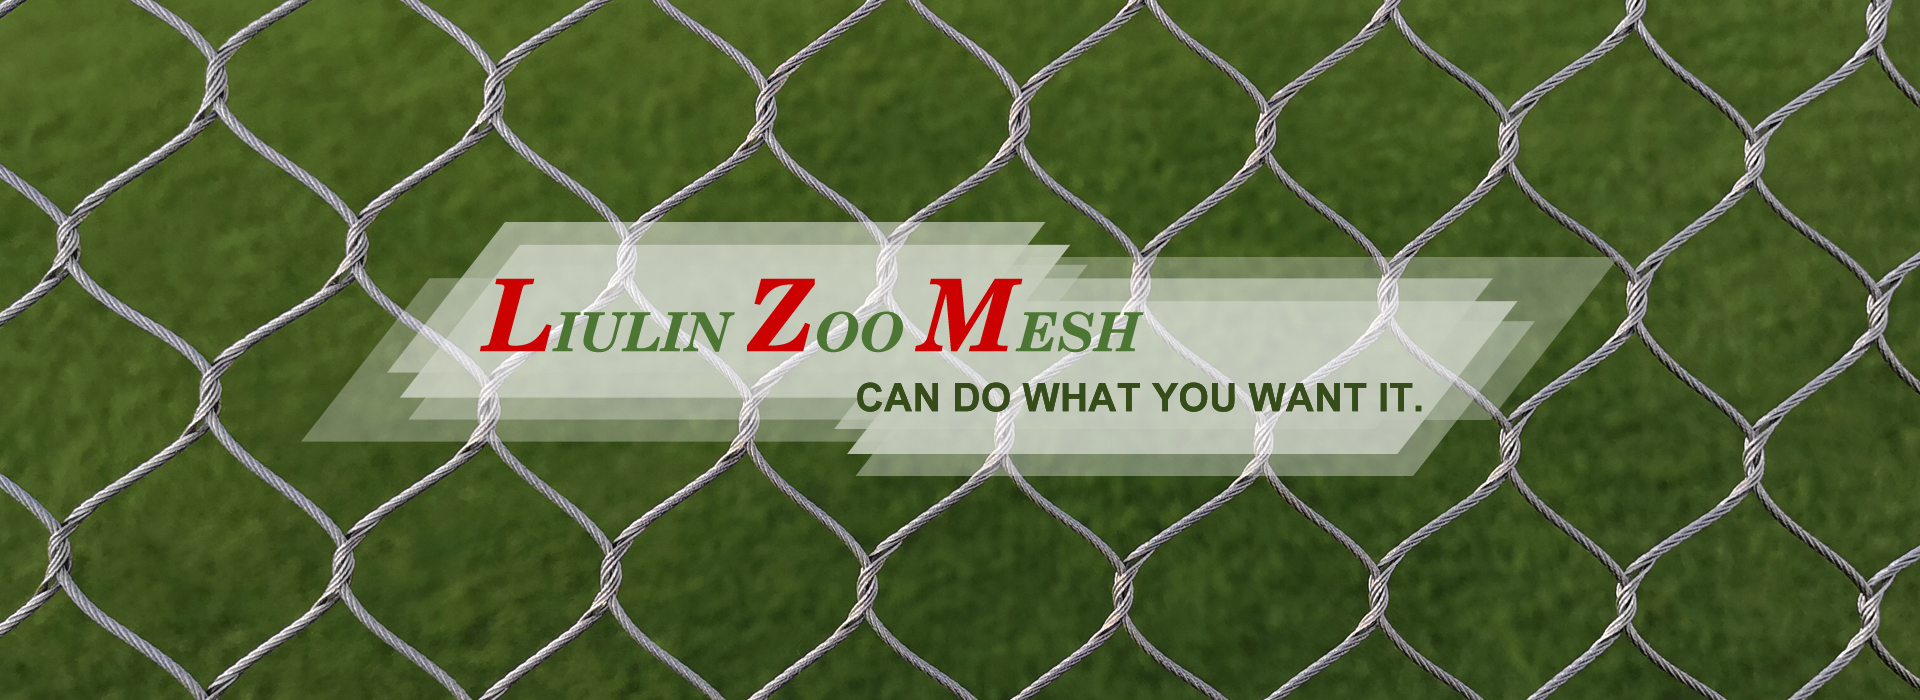 Stainless steel zoo mesh make a safe home for animals